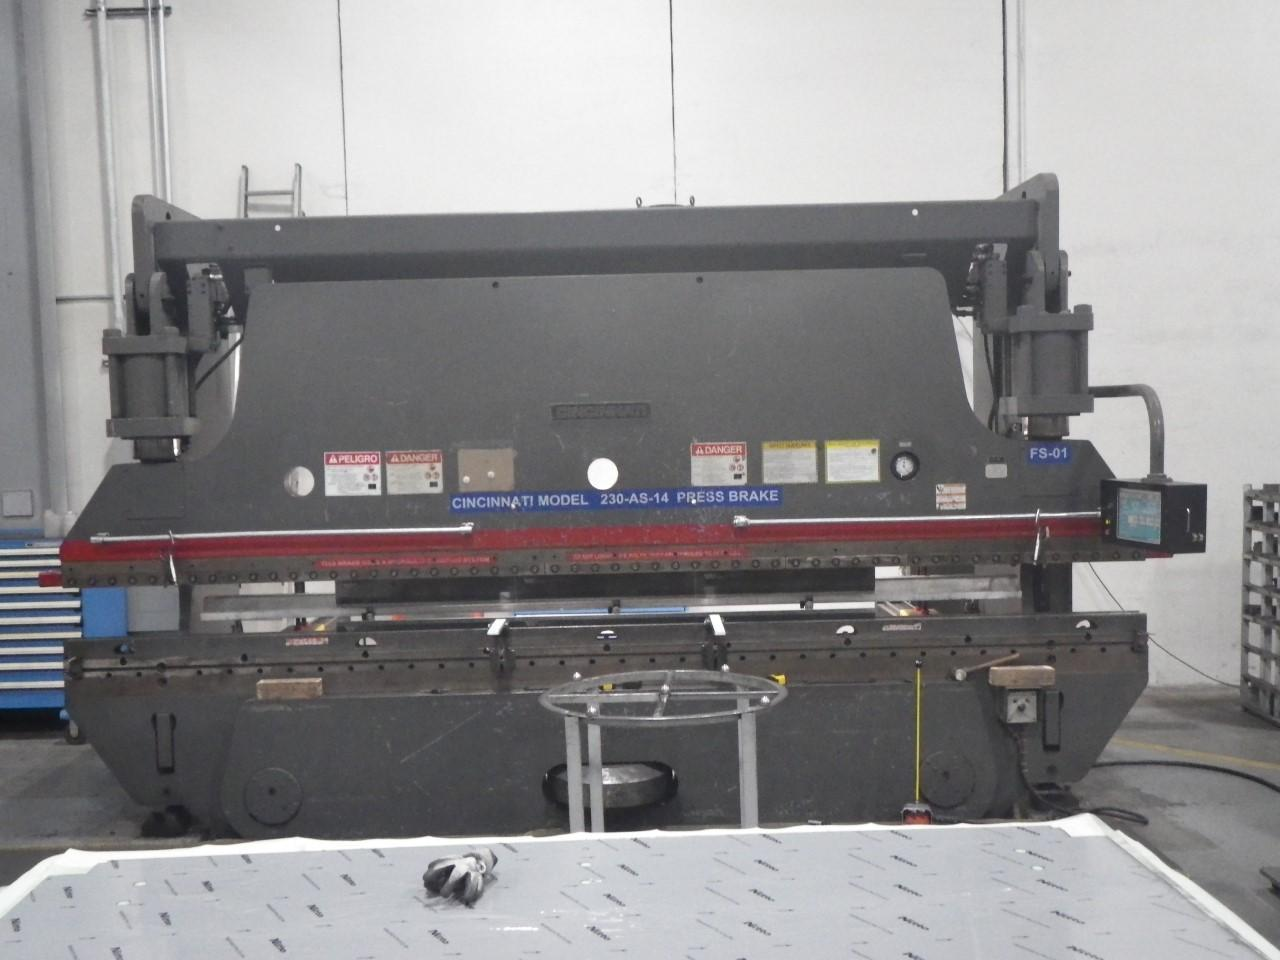 1984 Cincinnati 230ASx14, 16' x 230 Ton CNC Hydraulic Press Brake